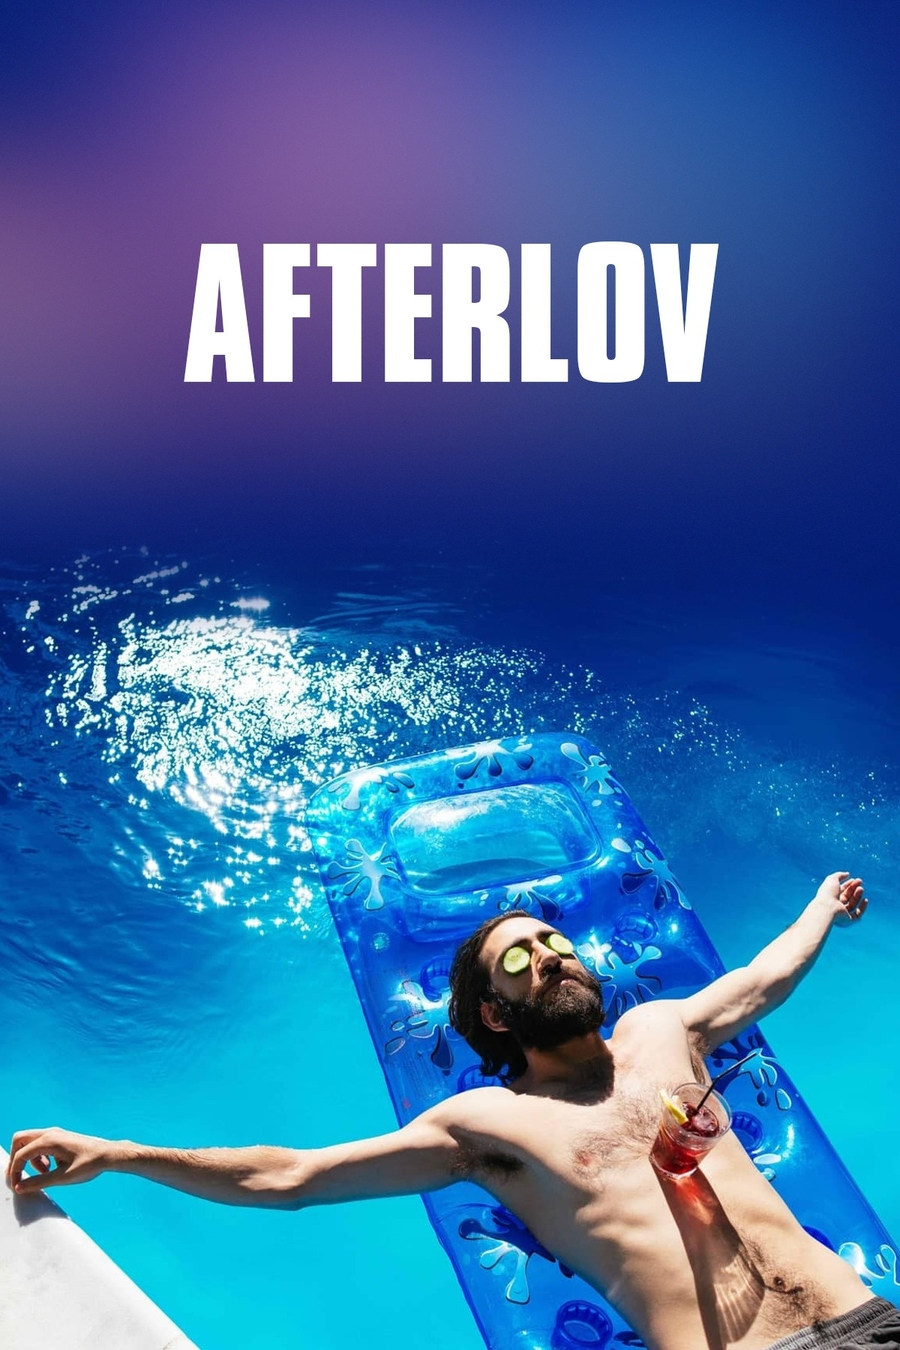 Afterlov